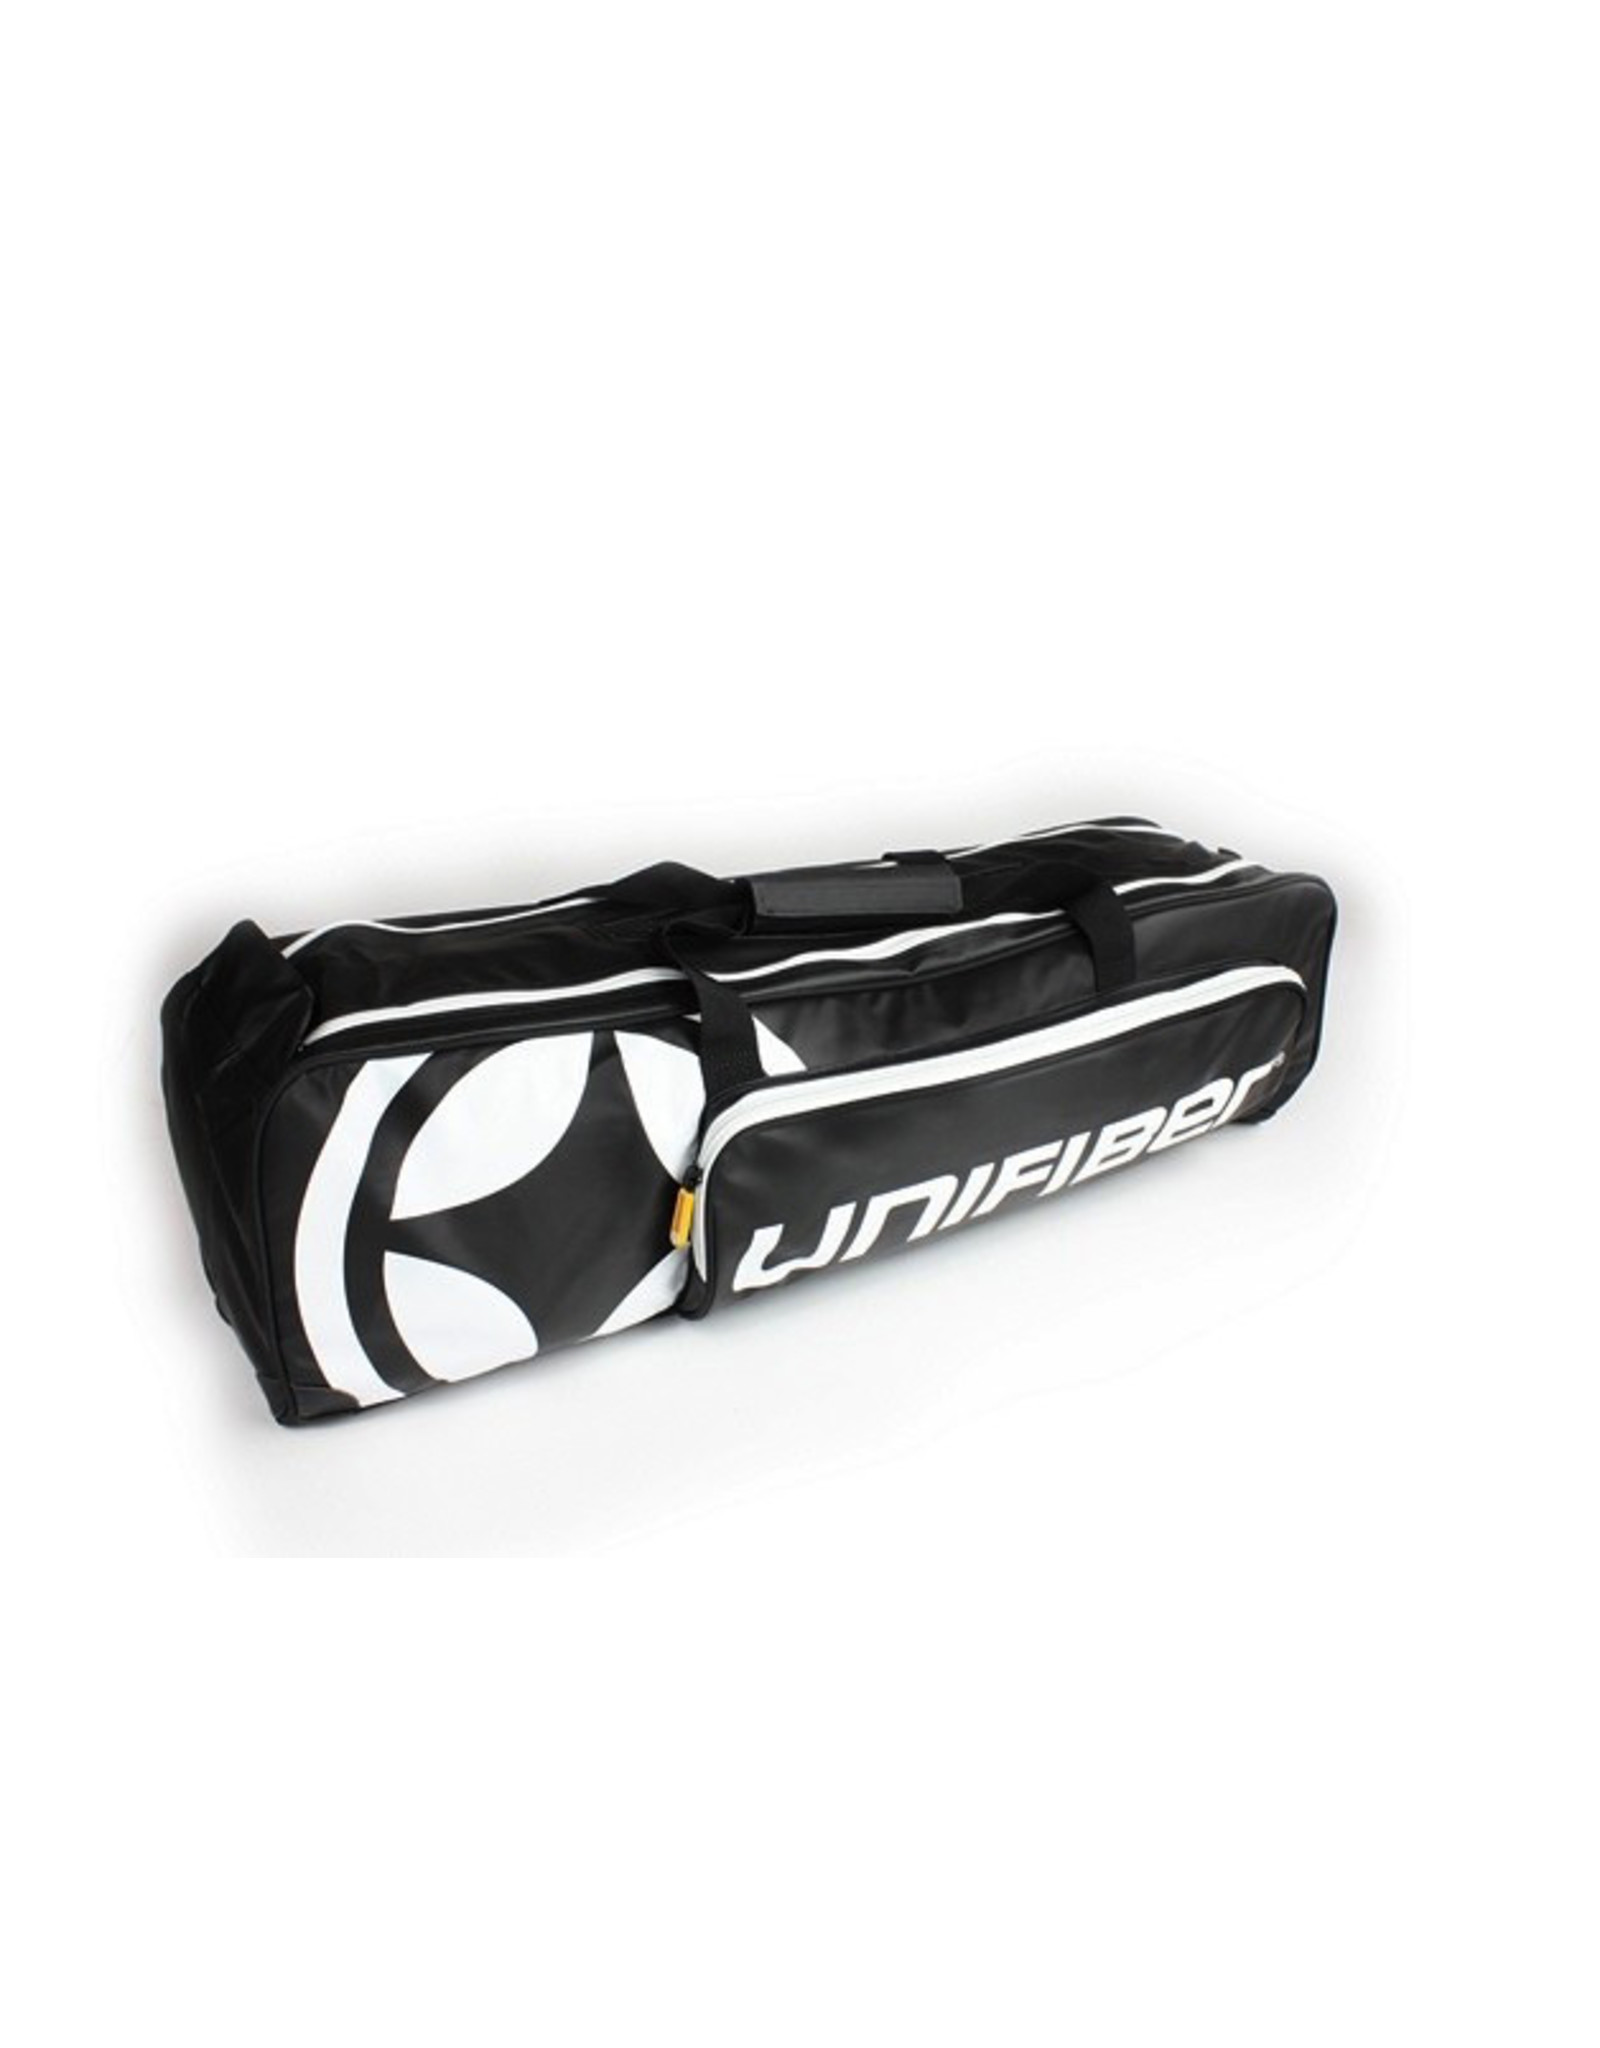 Unifiber Unifiber - Small Equipment Carry Bag